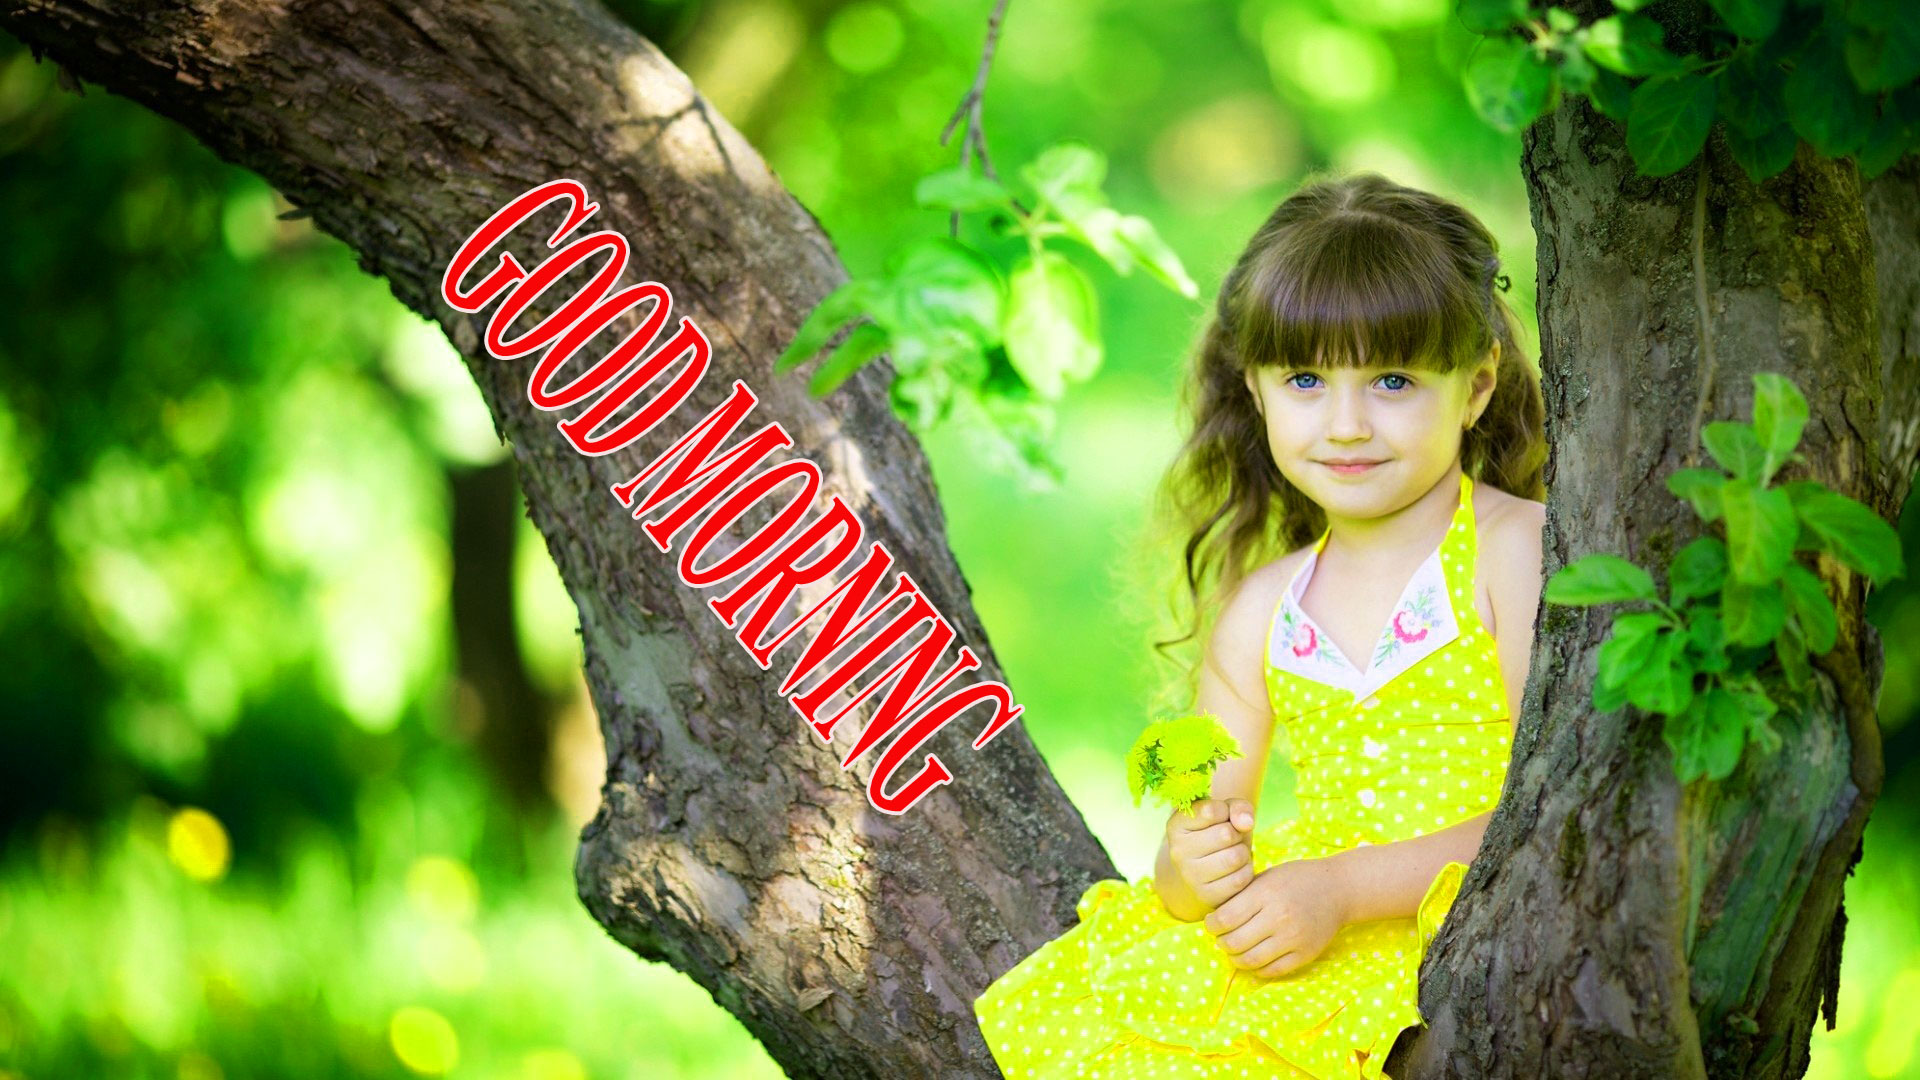 BEAUTIFUL LATEST AMAZING ALL GOOD MORNING WISHES IMAGES WALLPAPER PICS FOR GIRLFRIEND